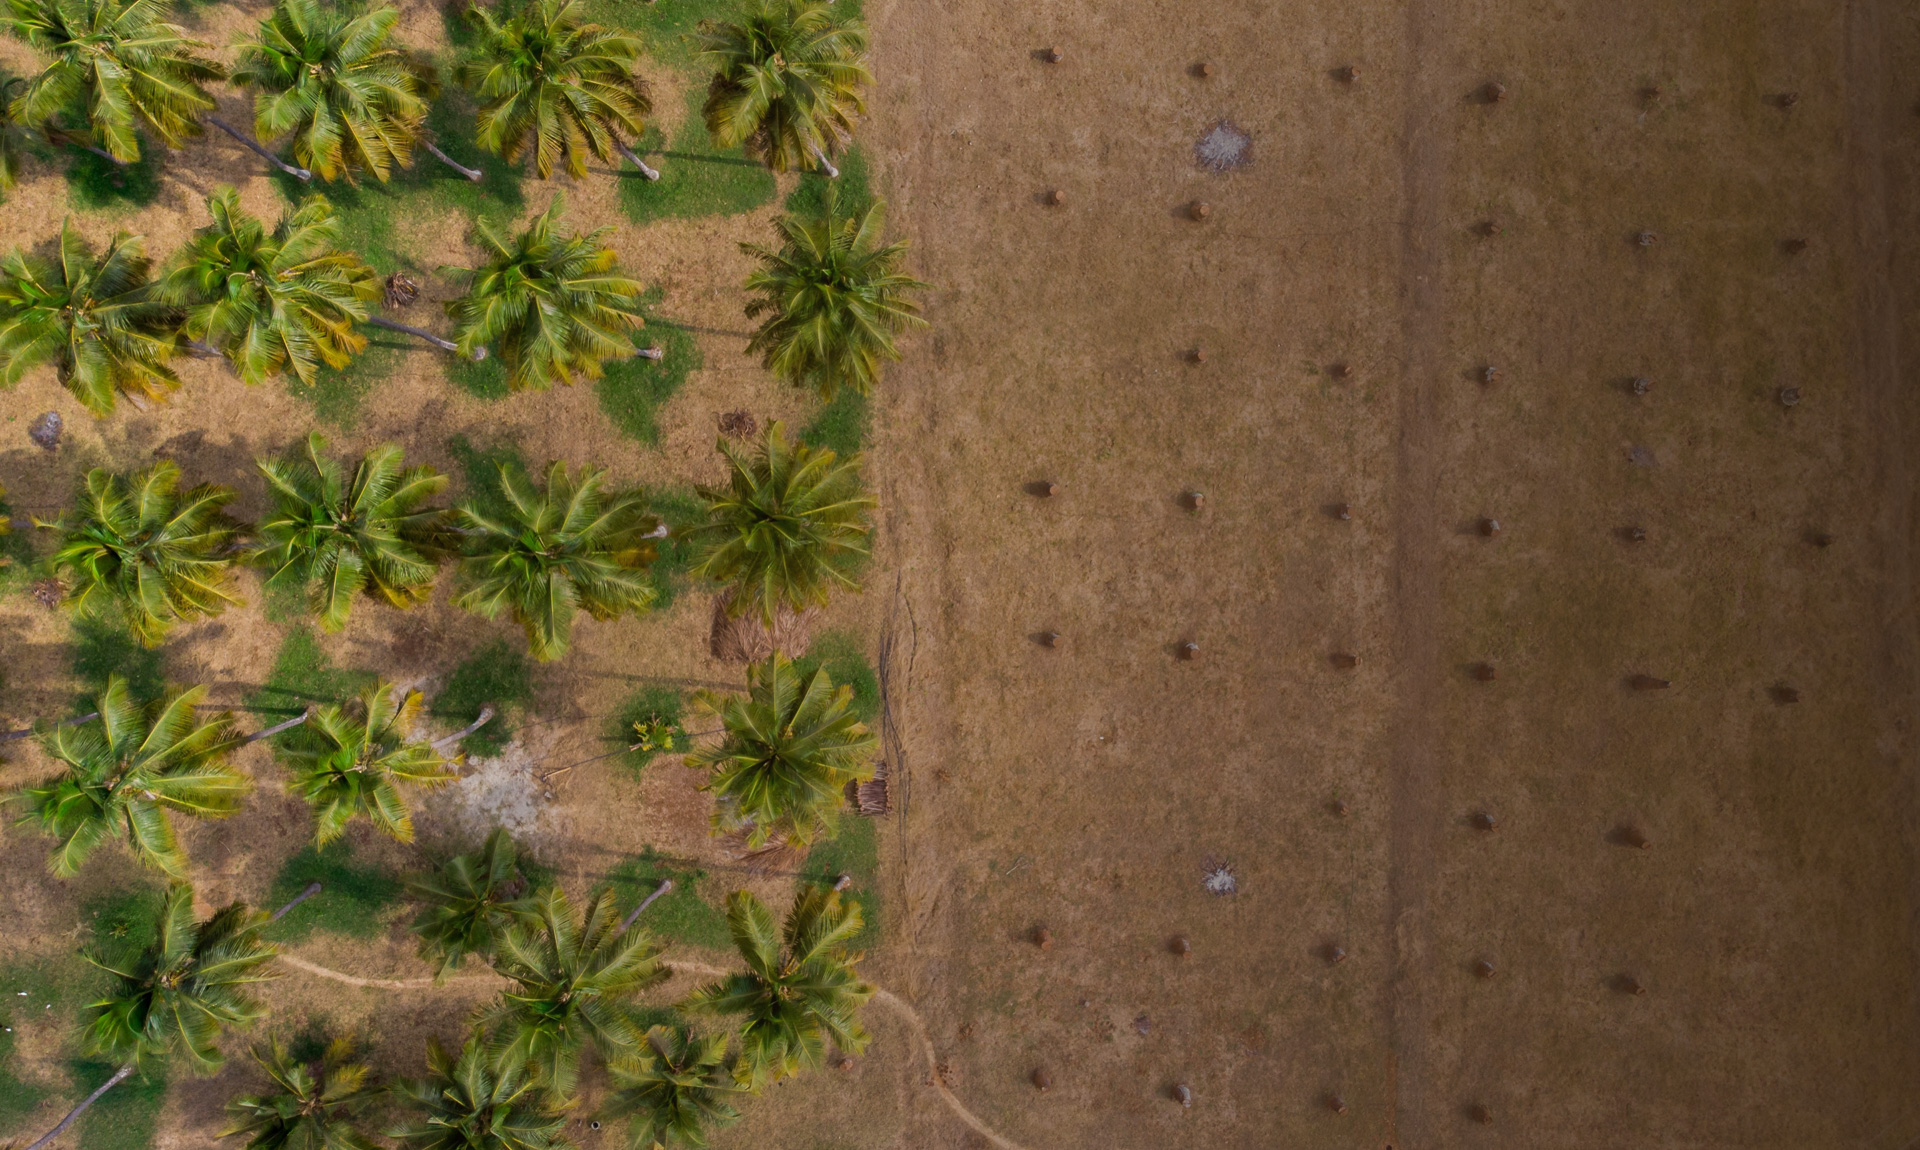 Overhead shot of a tropical jungle. Palm trees on the left and tree stumps on the right.